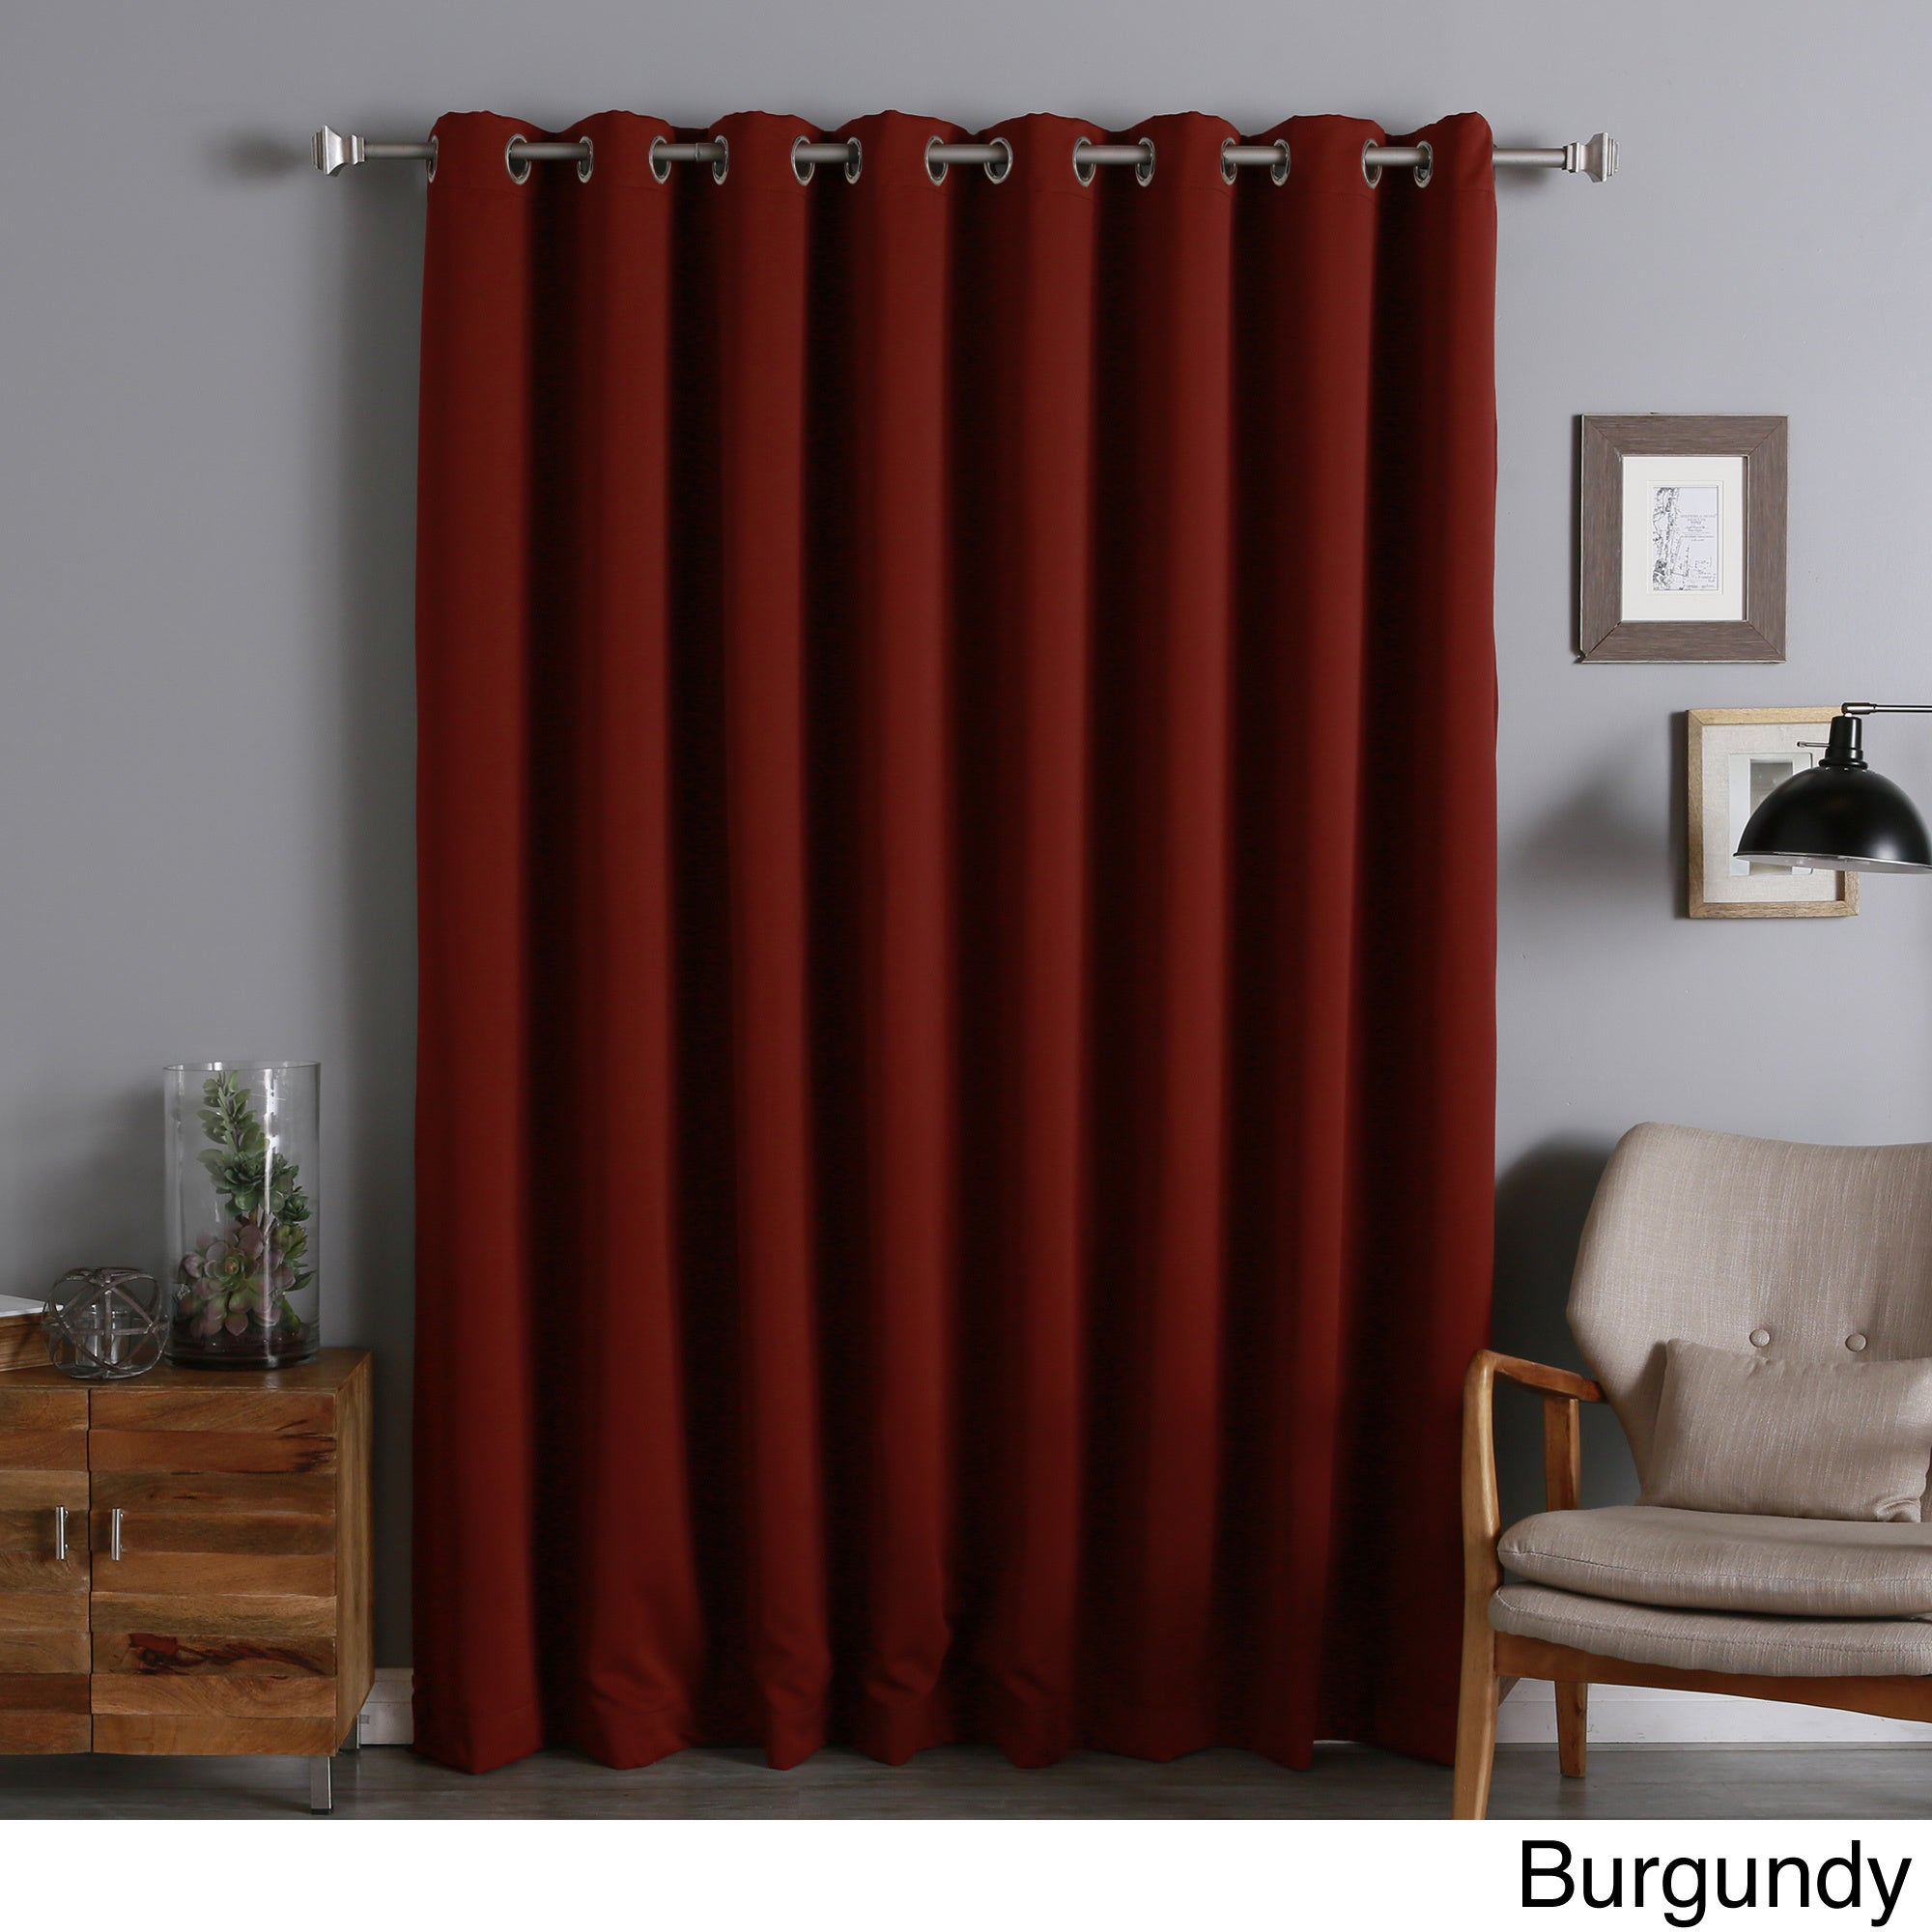 Aurora Home Extra Width Thermal Insulated 96 Inch Blackout